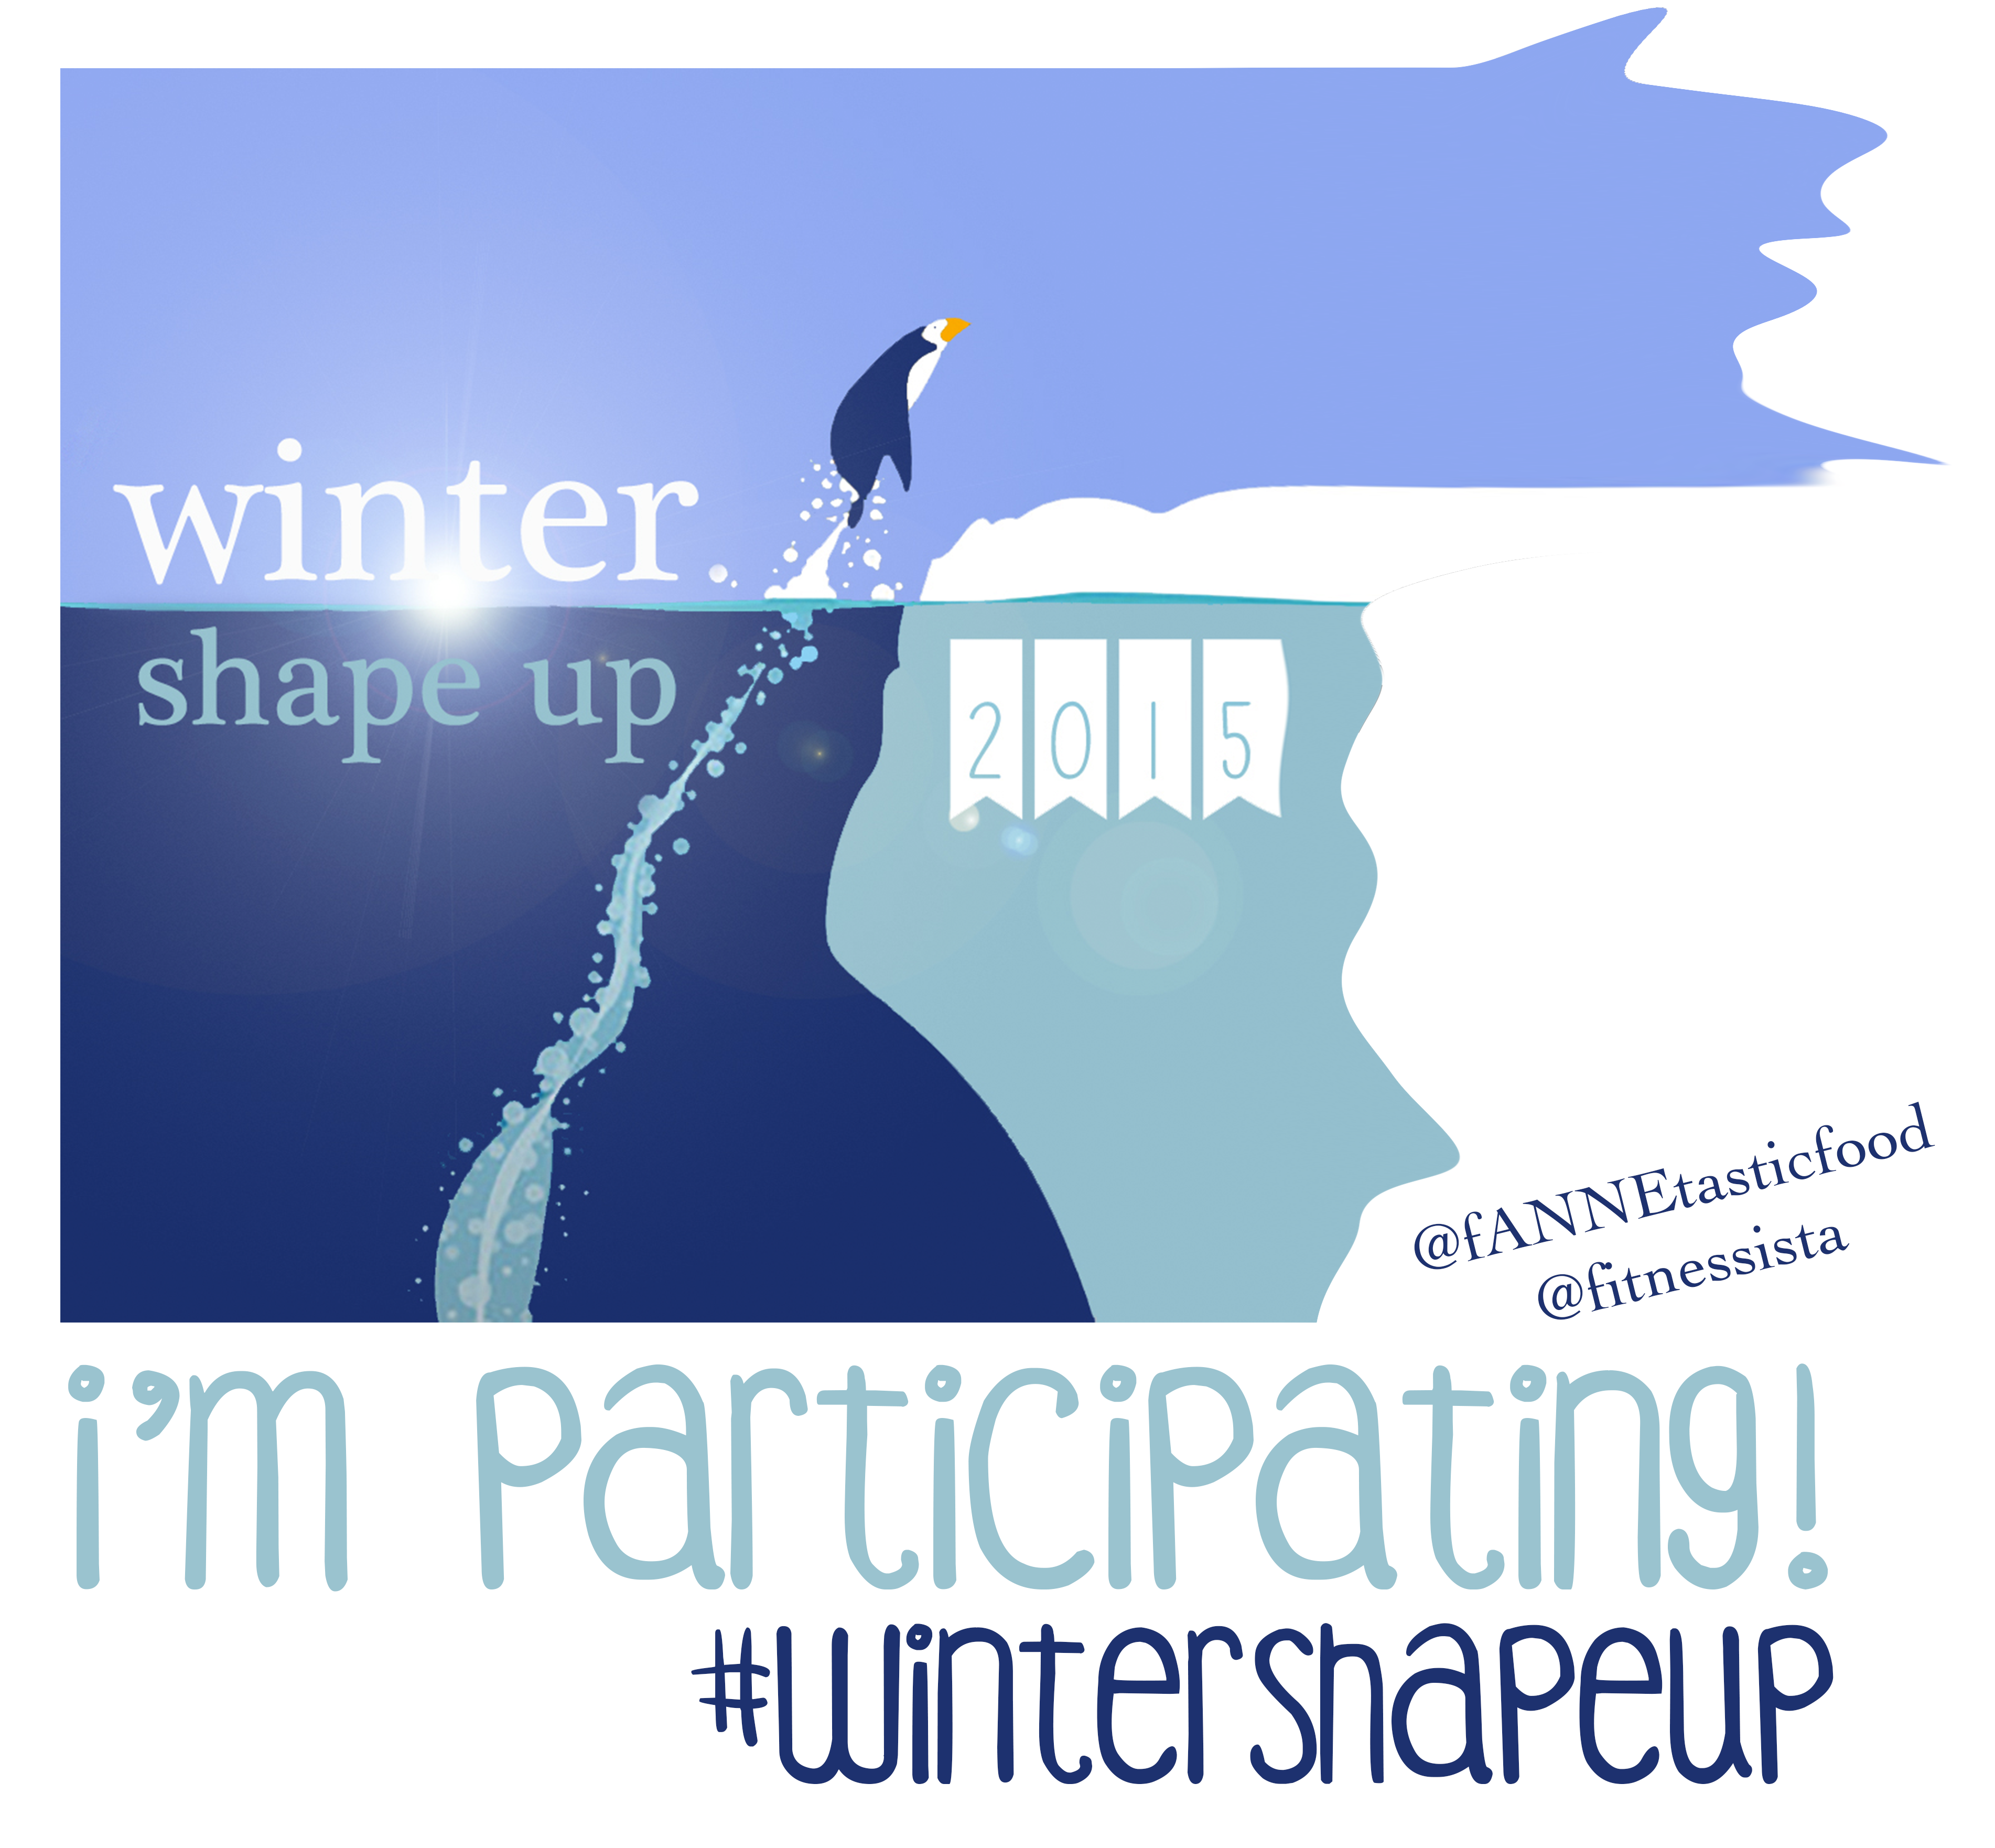 I'm participating in Winter Shape Up 2015